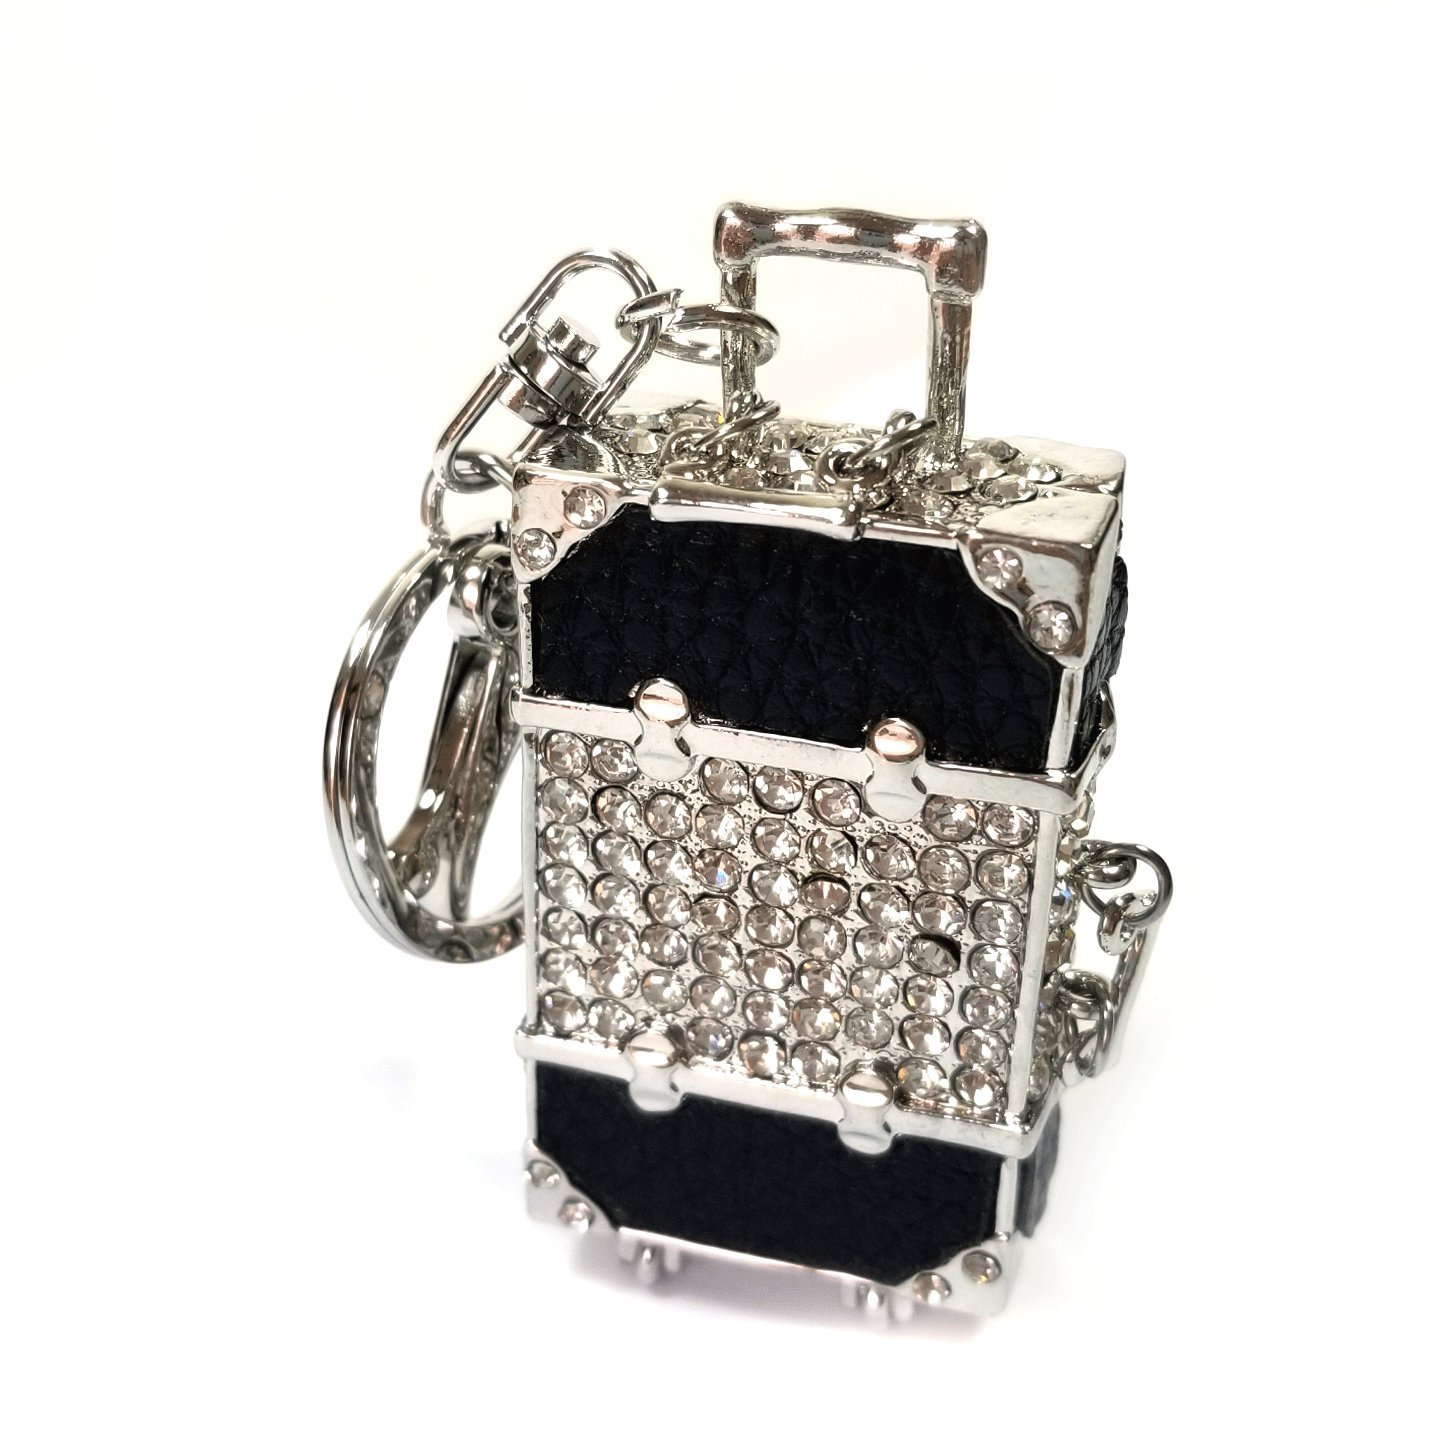 Teri's Boutique Travel Luggage Roller Bag Rhinestone Luxury Charm Pendant Car Keychain (Black)